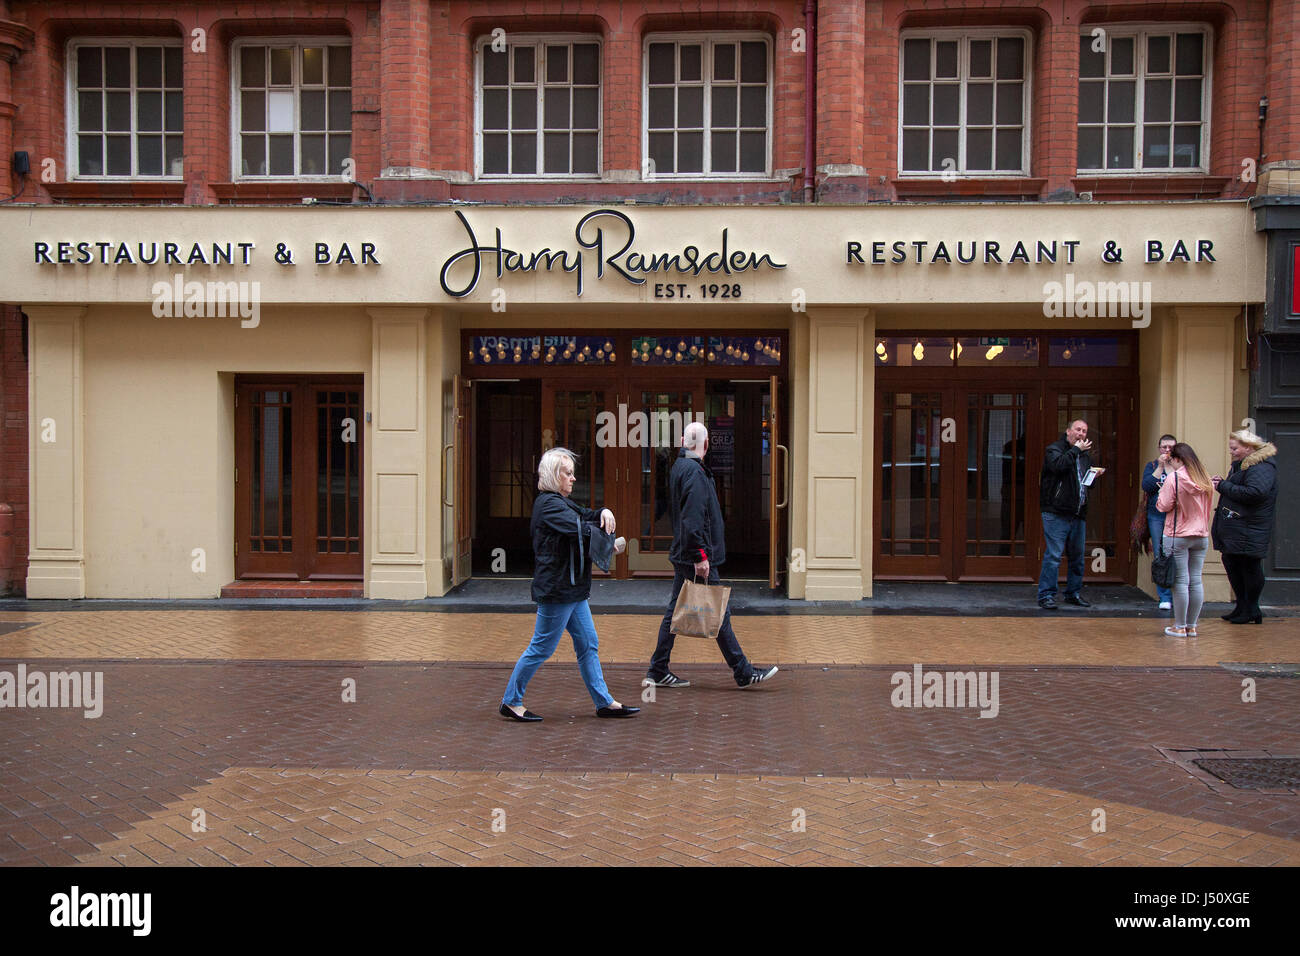 Harry Ramsden, Restaurant & Bar, Blackpool, Lancashire, UK Stock Photo